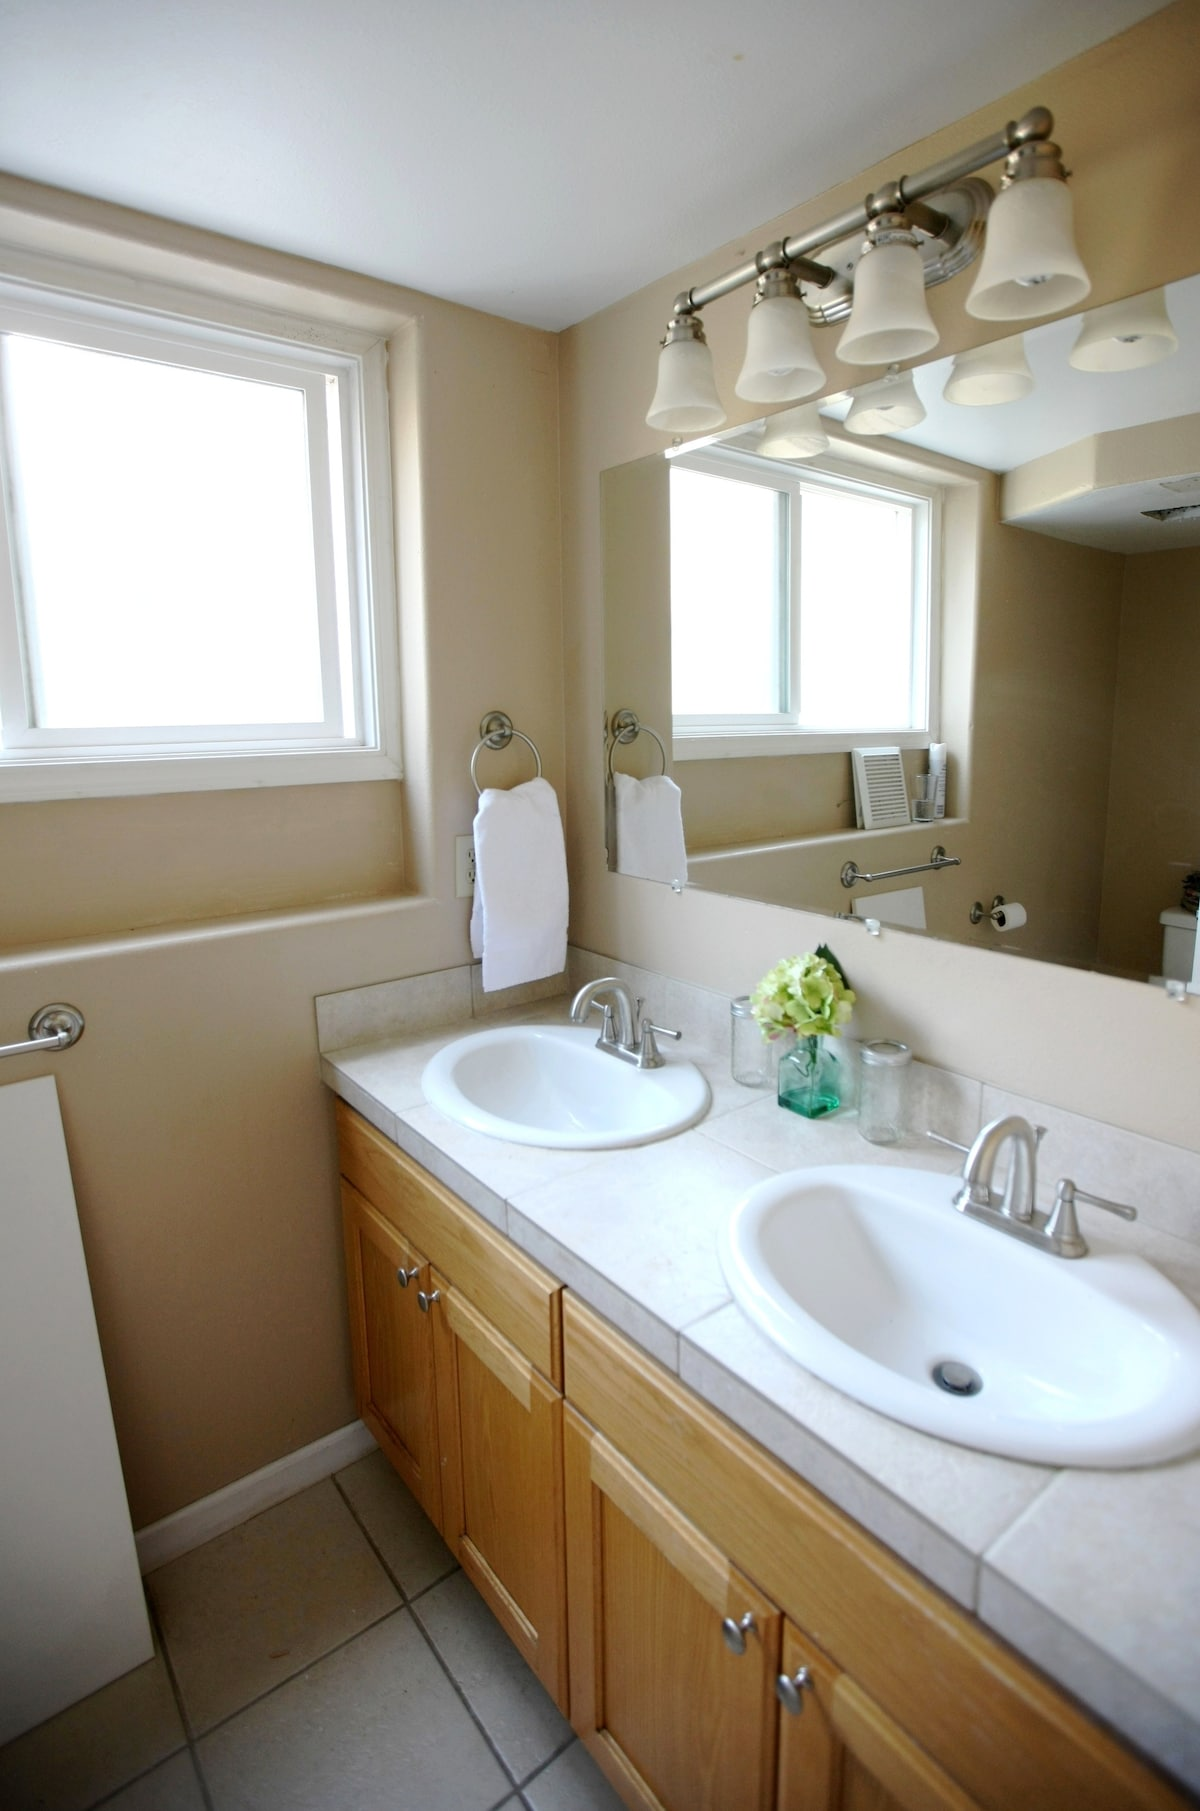 The bathroom has two sinks and shower room has a separate door, which makes sharing this space easy and convenient.